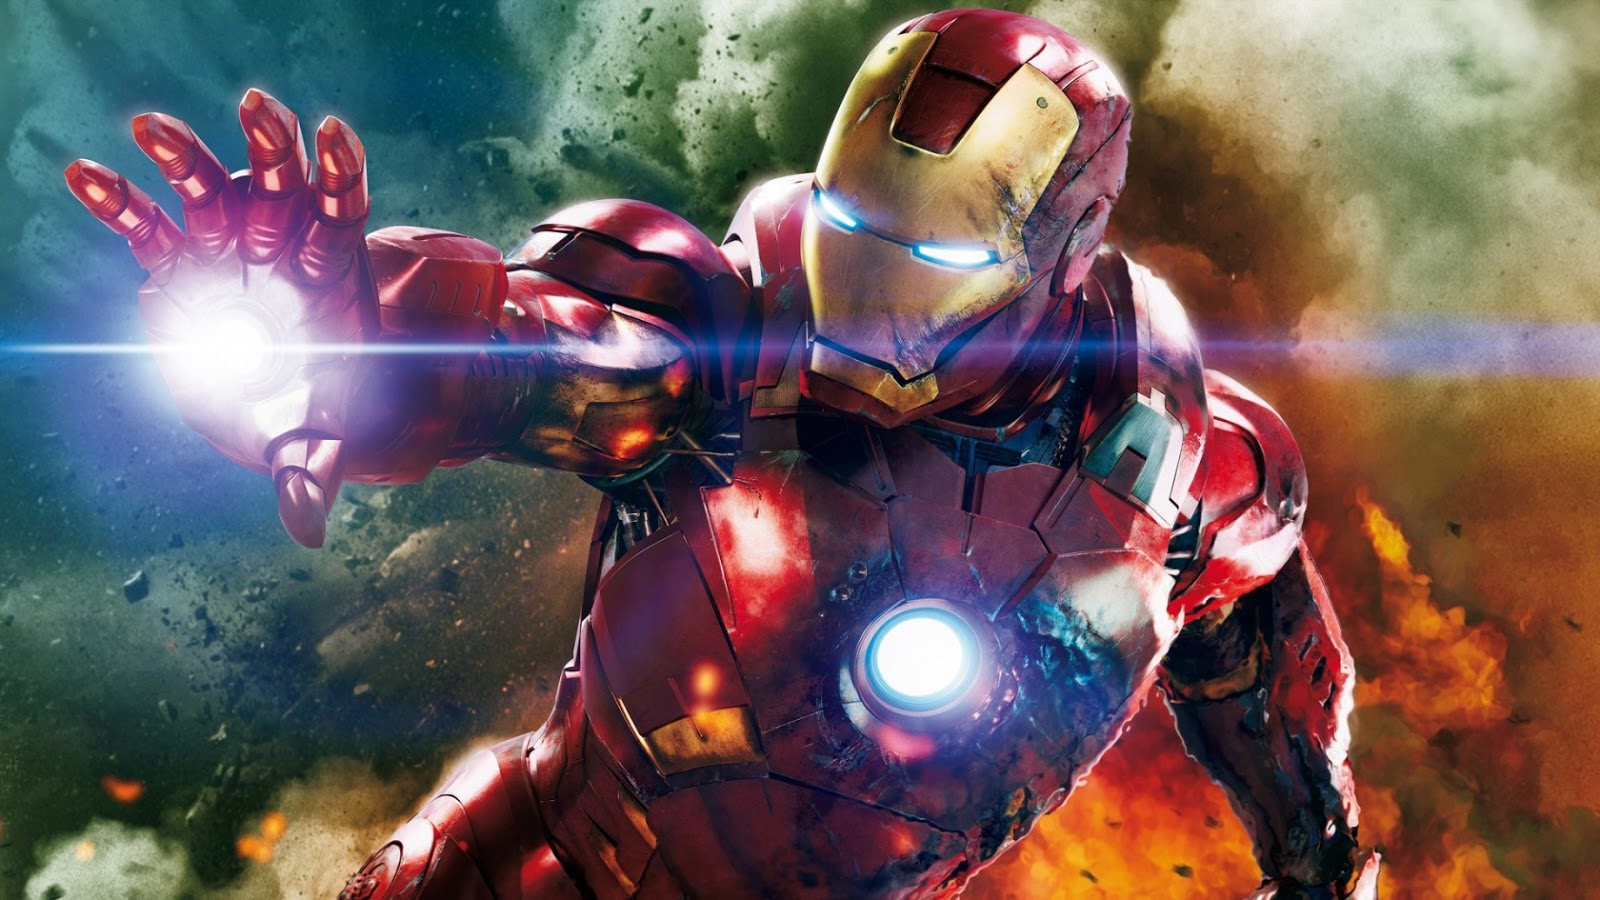 free download iron man 3 full hd wallpapers | free download wallpaper